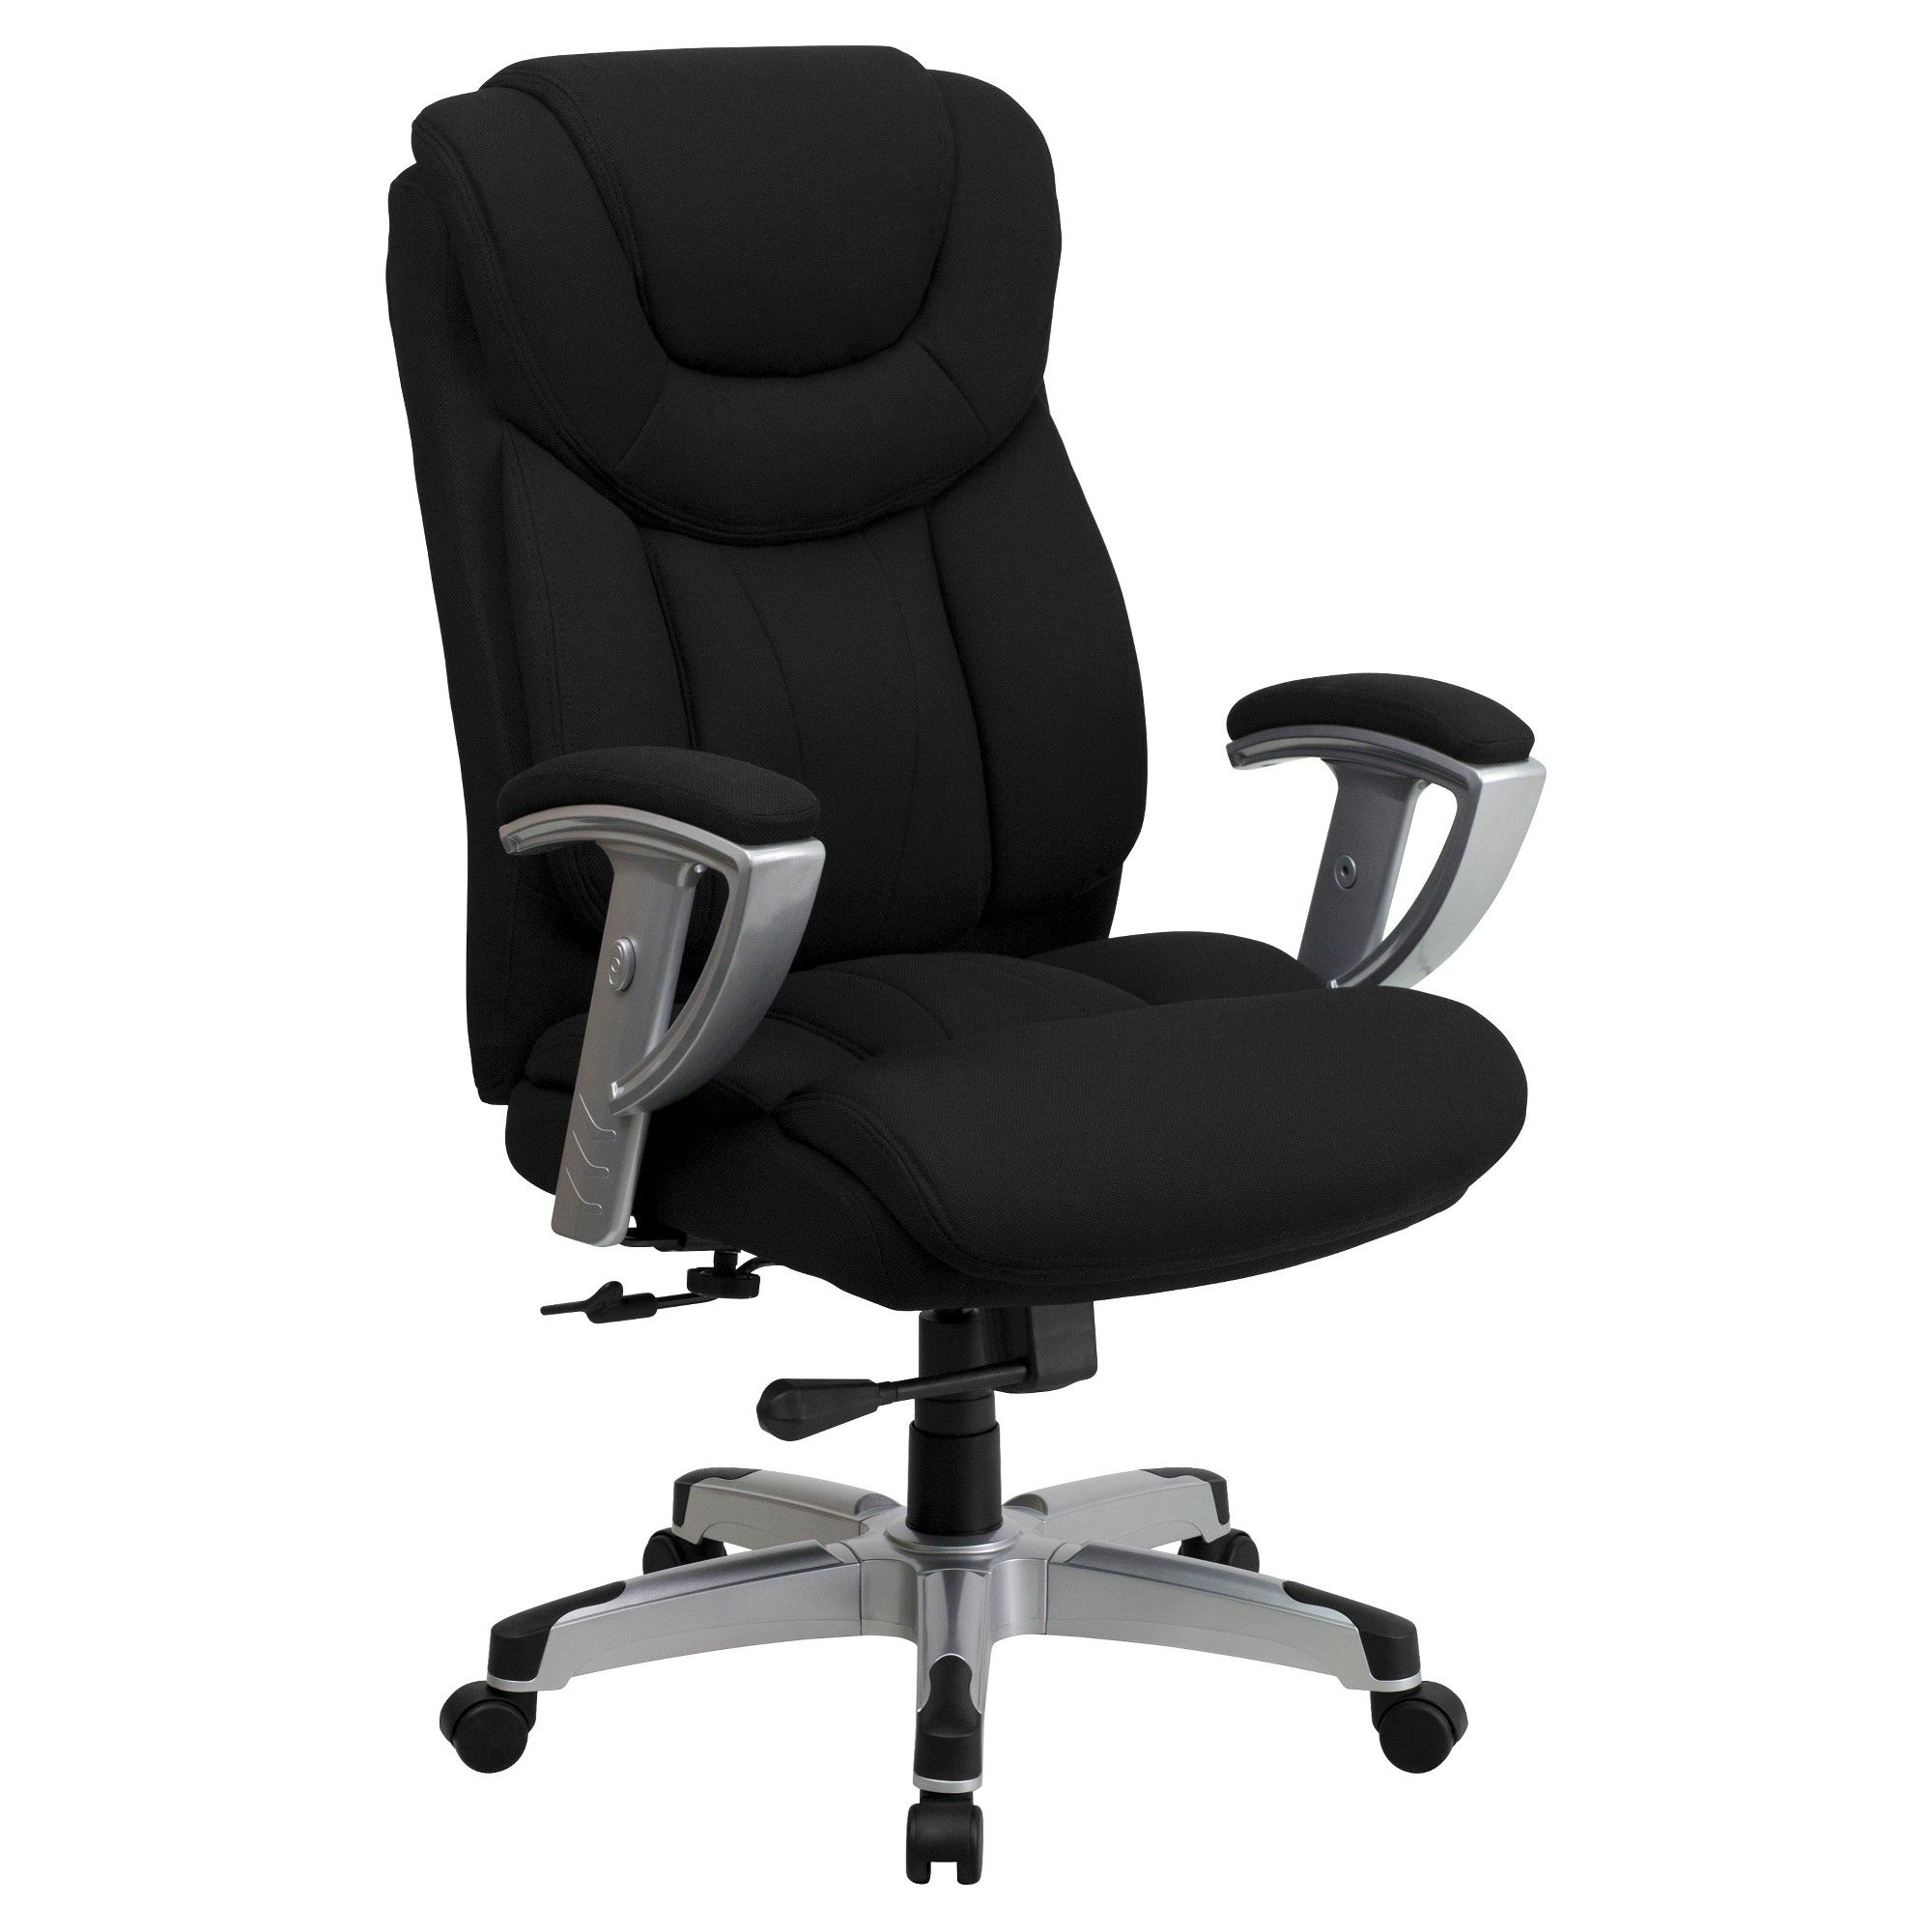 sizing and fresh tall picture lbs big chair chairs x office capacity regarding of